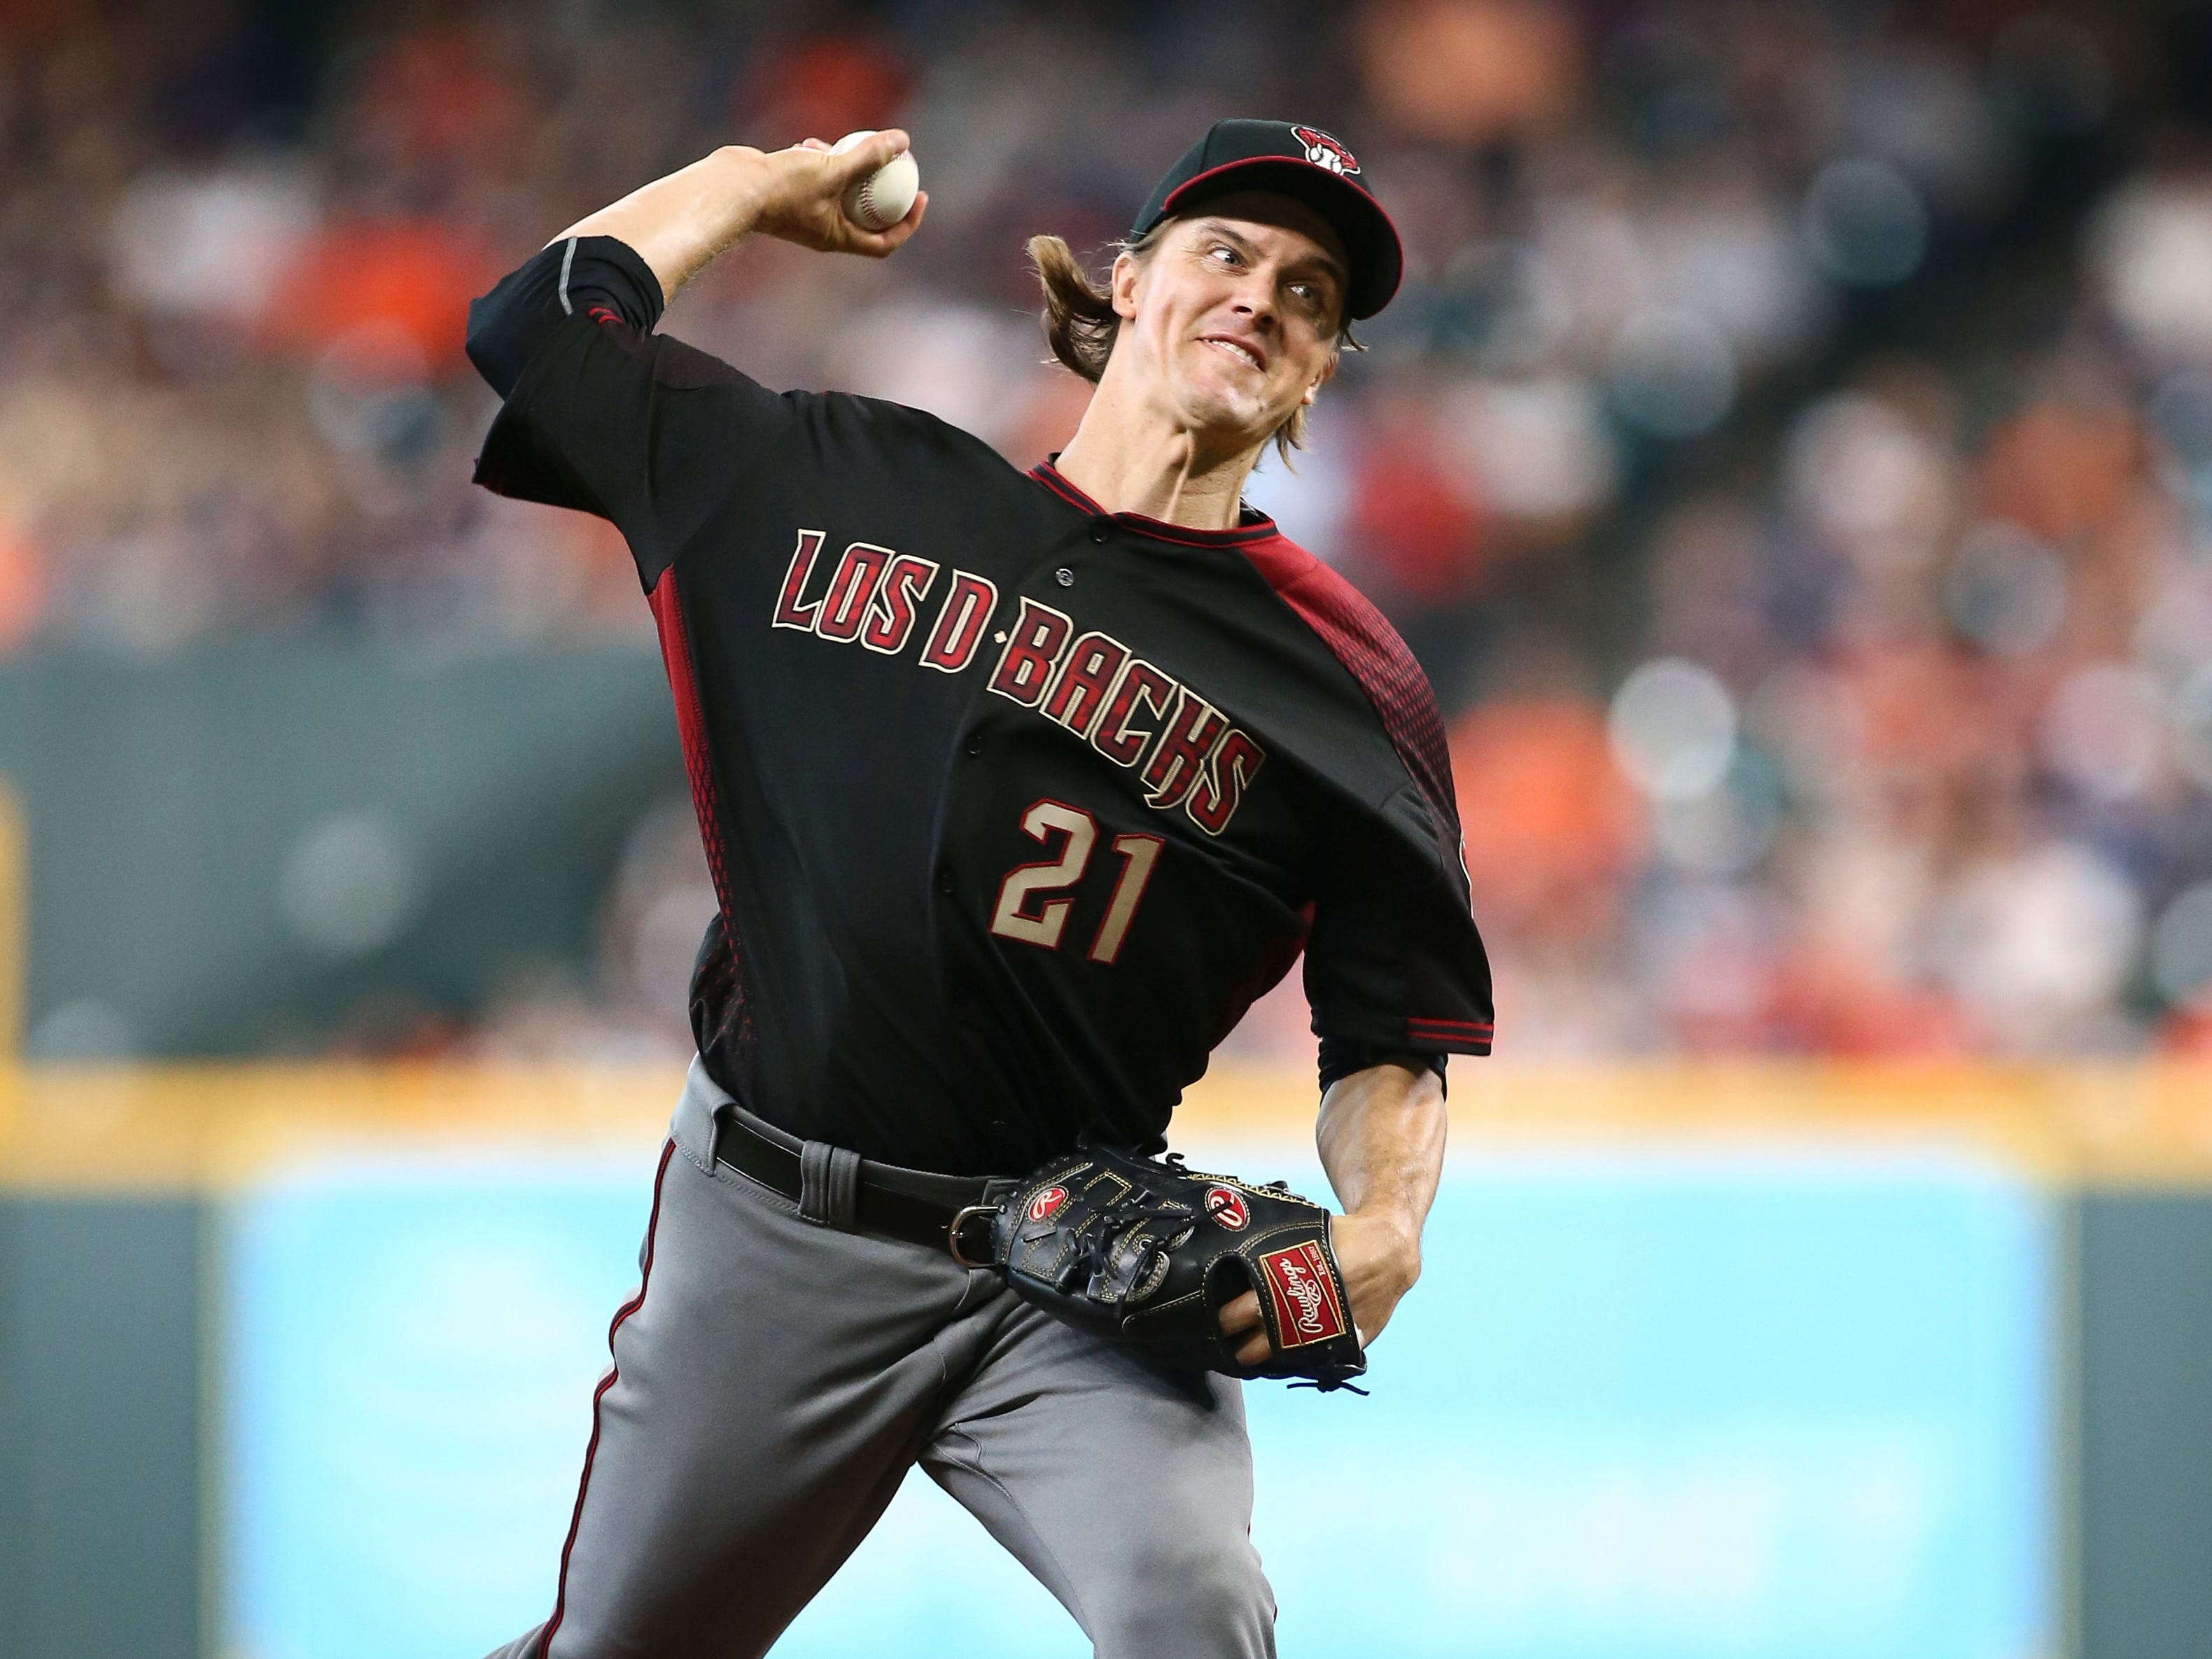 Sep 16, 2018; Houston, TX, USA; Arizona Diamondbacks starting pitcher Zack Greinke (21) delivers a pitch during the fourth inning against the Houston Astros at Minute Maid Park. Mandatory Credit: Troy Taormina-USA TODAY Sports